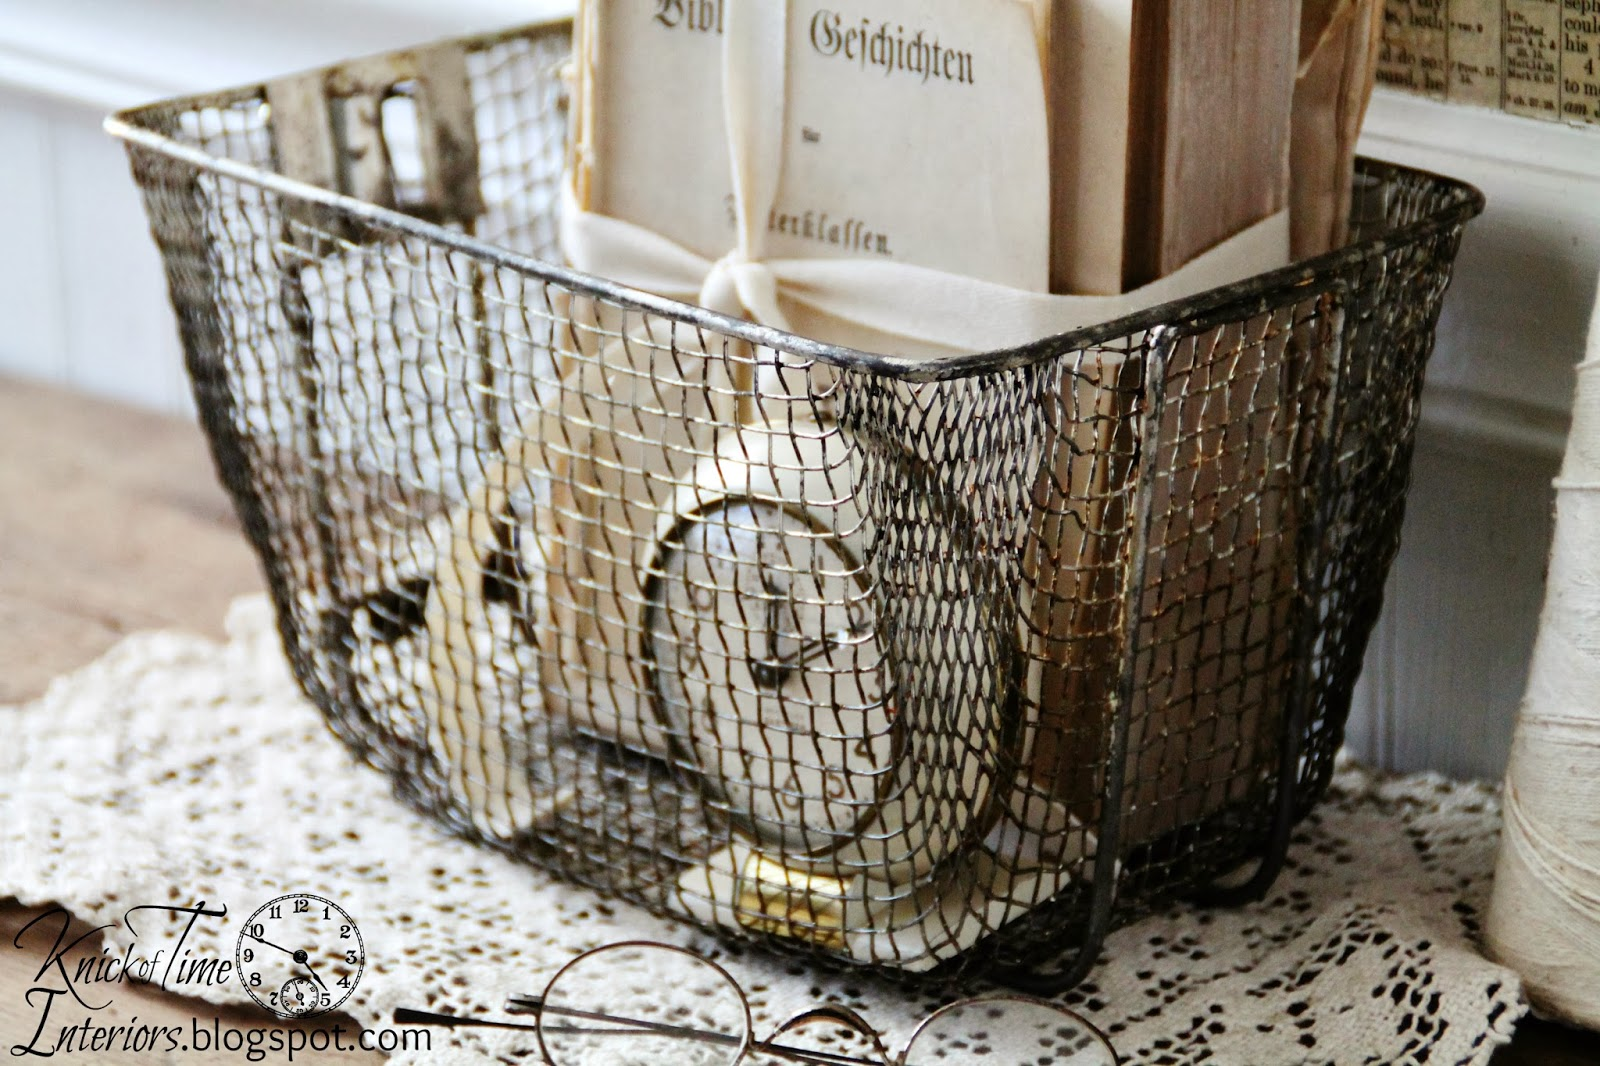 Vintage Fryer Wire Basket from Knick of Time